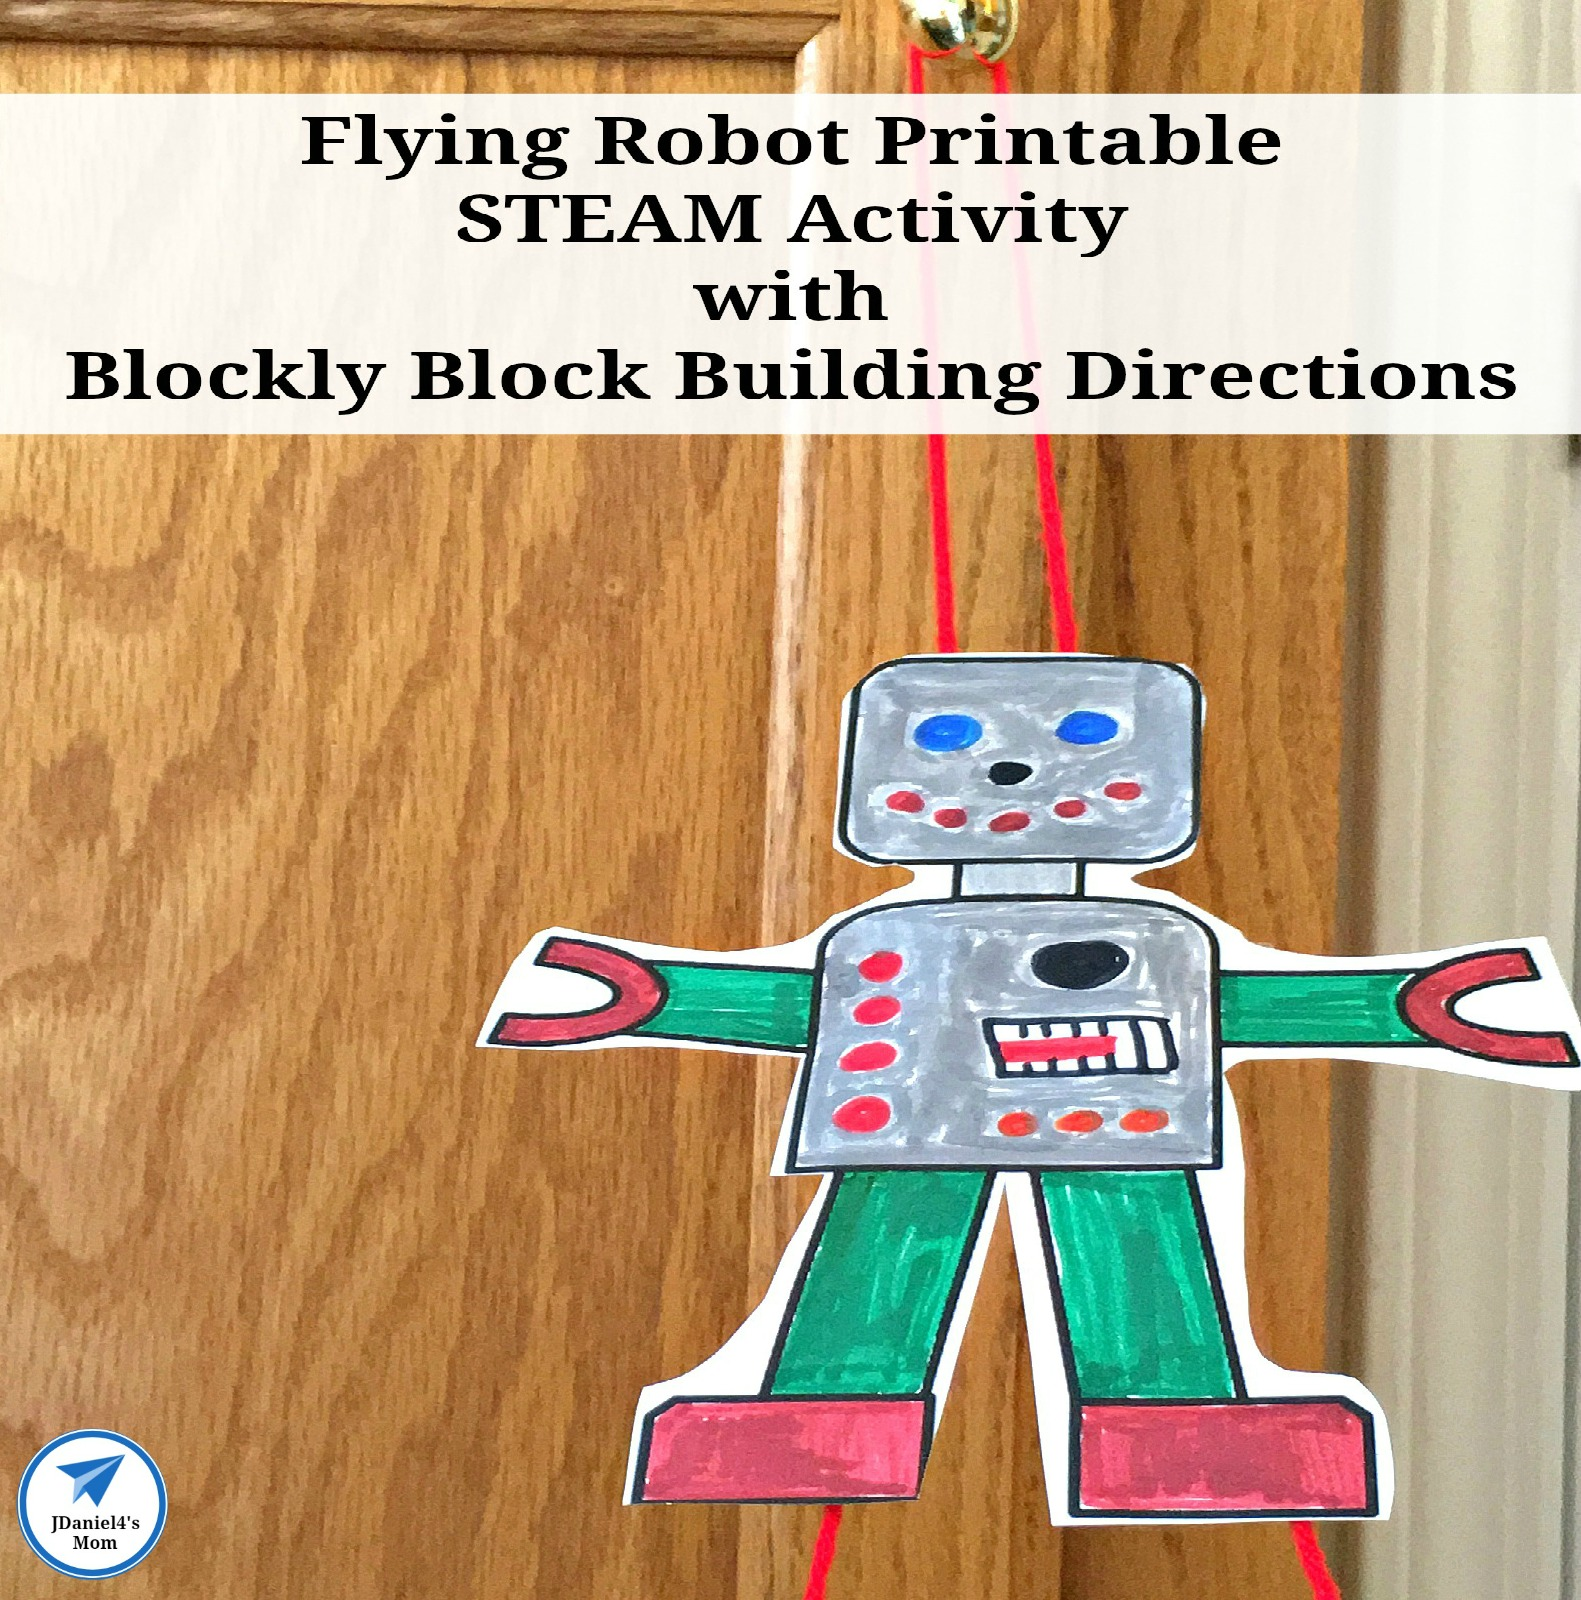 Flying Robot Printable STEAM Activity with Blockly Block Building Directions